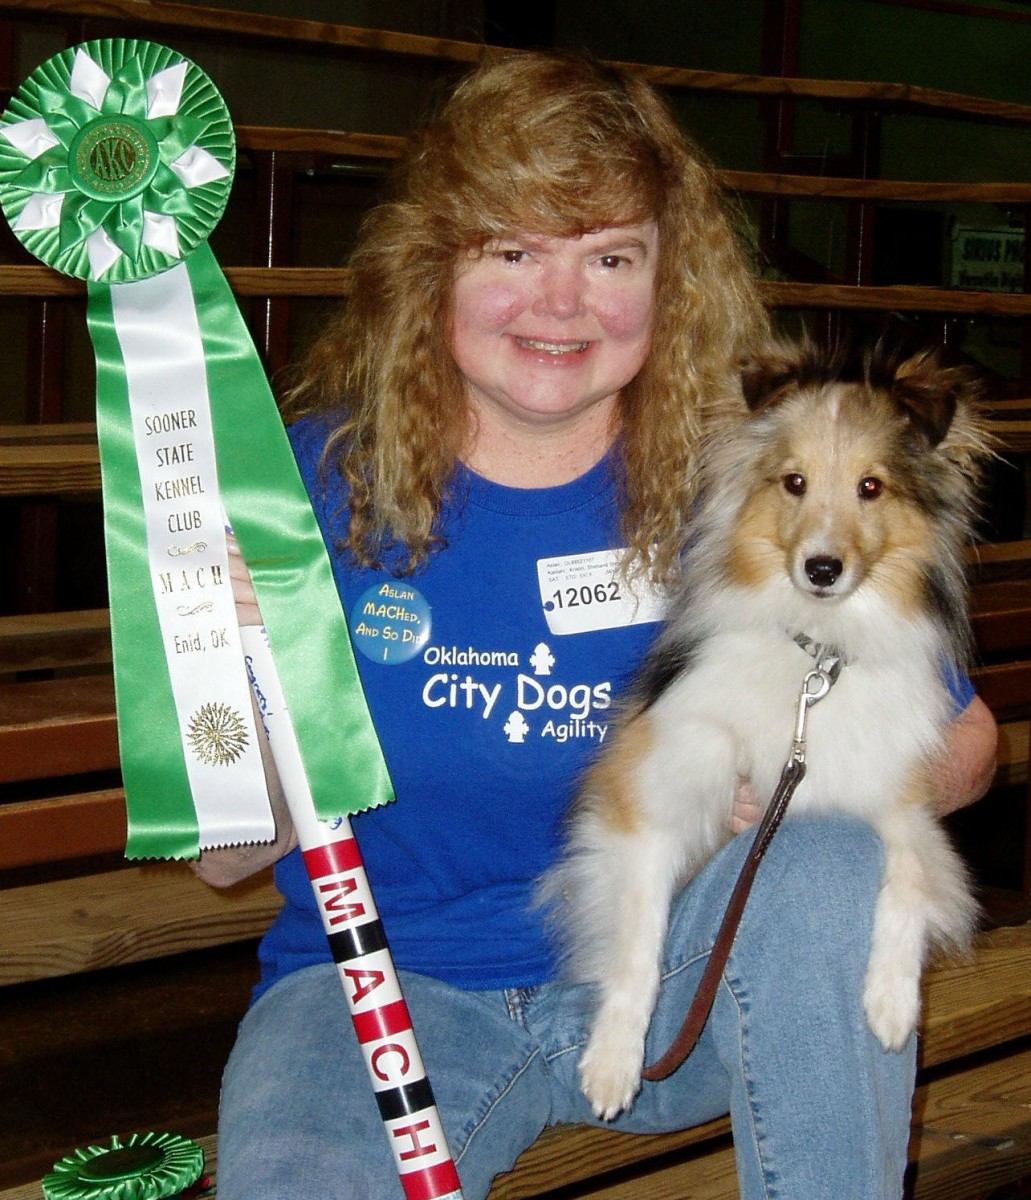 Goals vs. Dreams: How to Set Goals for Agility and Other Canine Sports